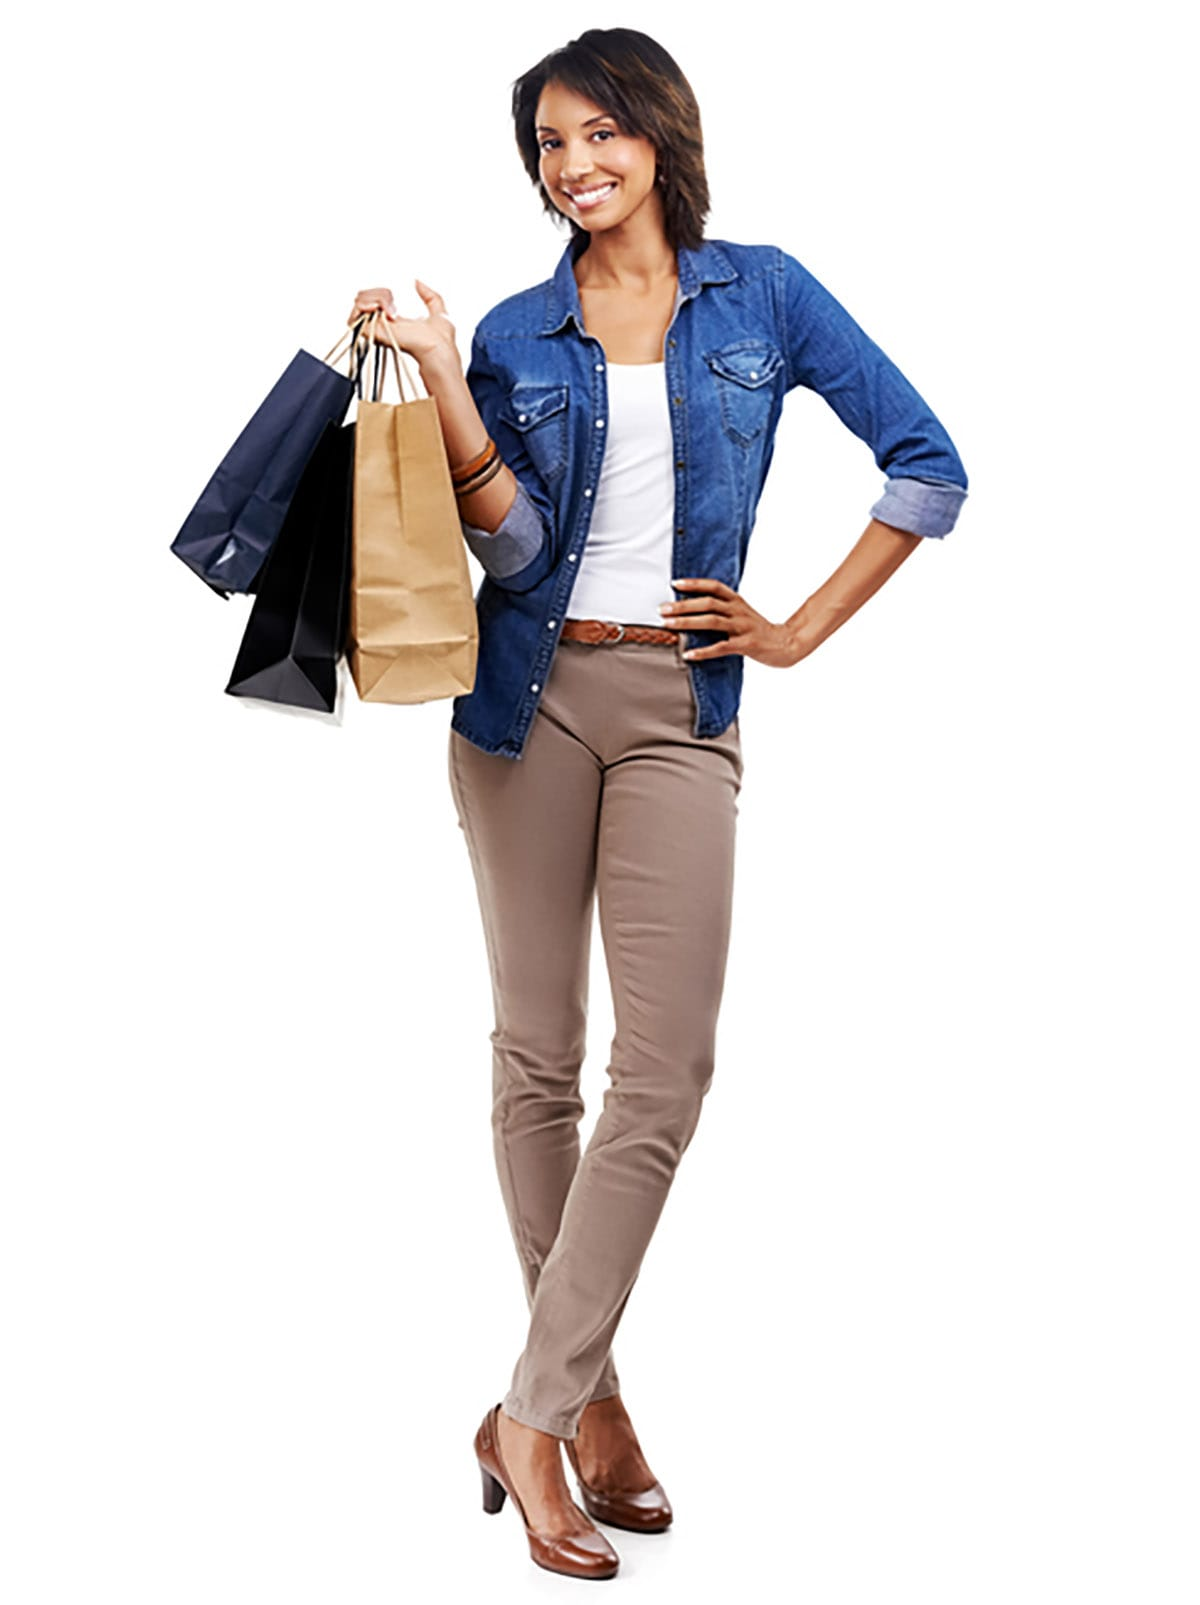 Trendy female posing with shopping bags